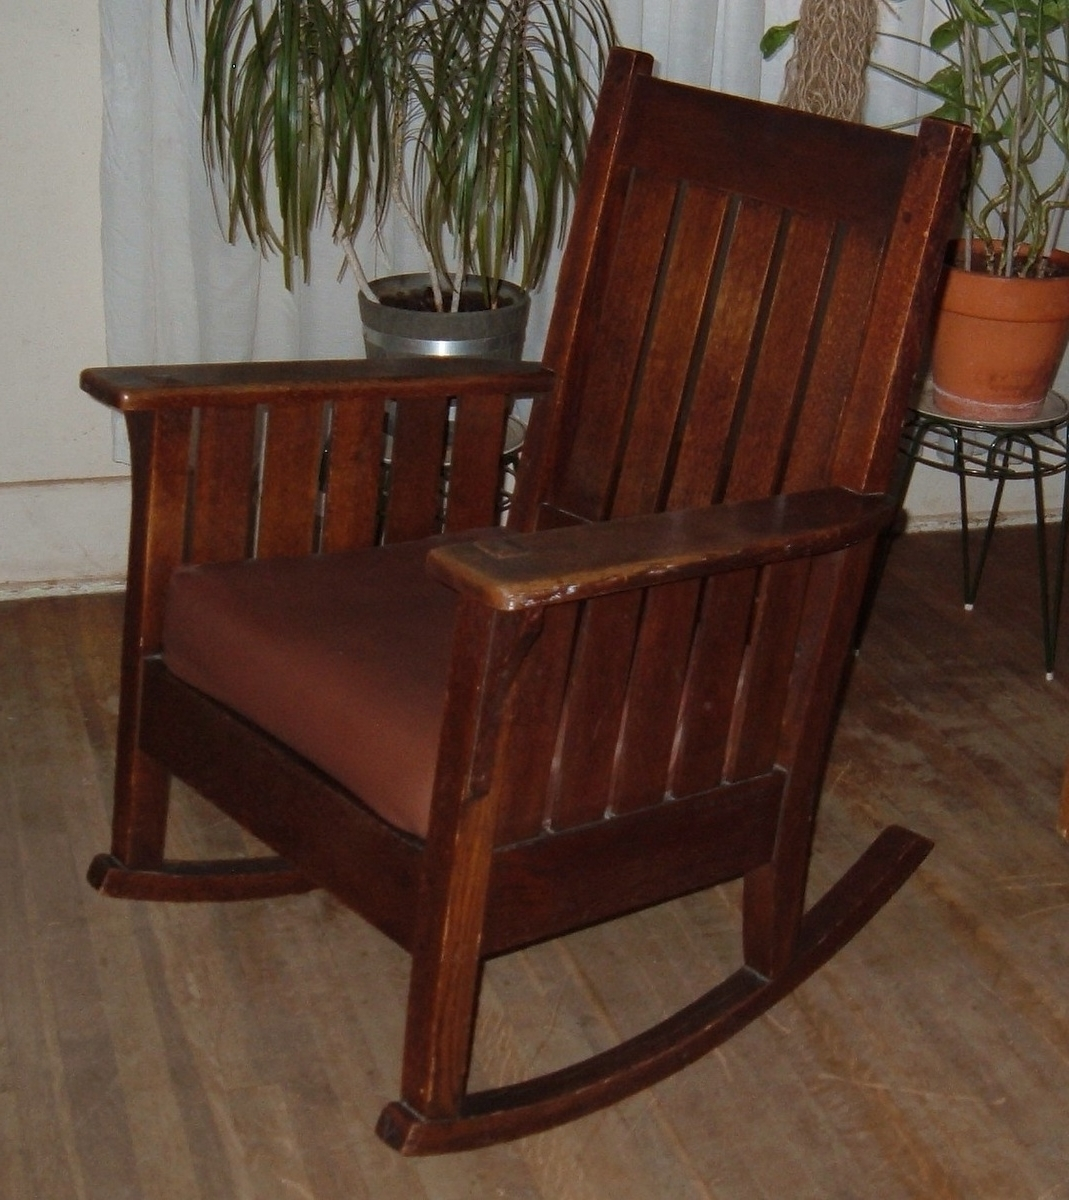 Current Old Fashioned Rocking Chairs Intended For Mission Rocking Chair Collectors Weekly Antique Chairs 1800S M2Jk (View 2 of 15)